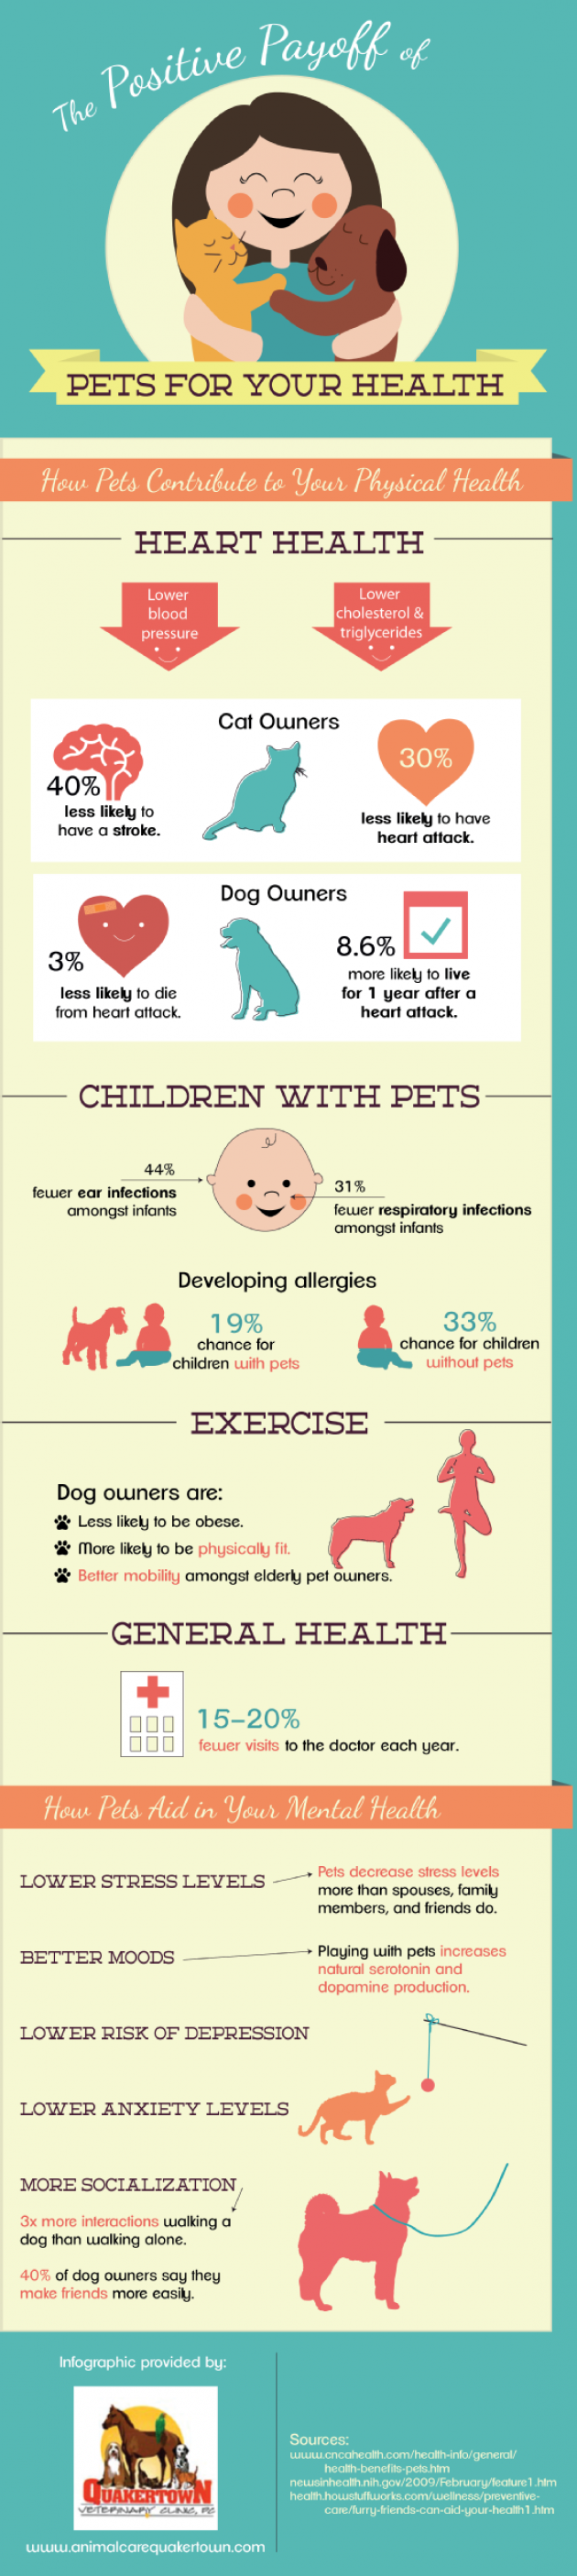 The Positive Payoff of Pets for Your Health